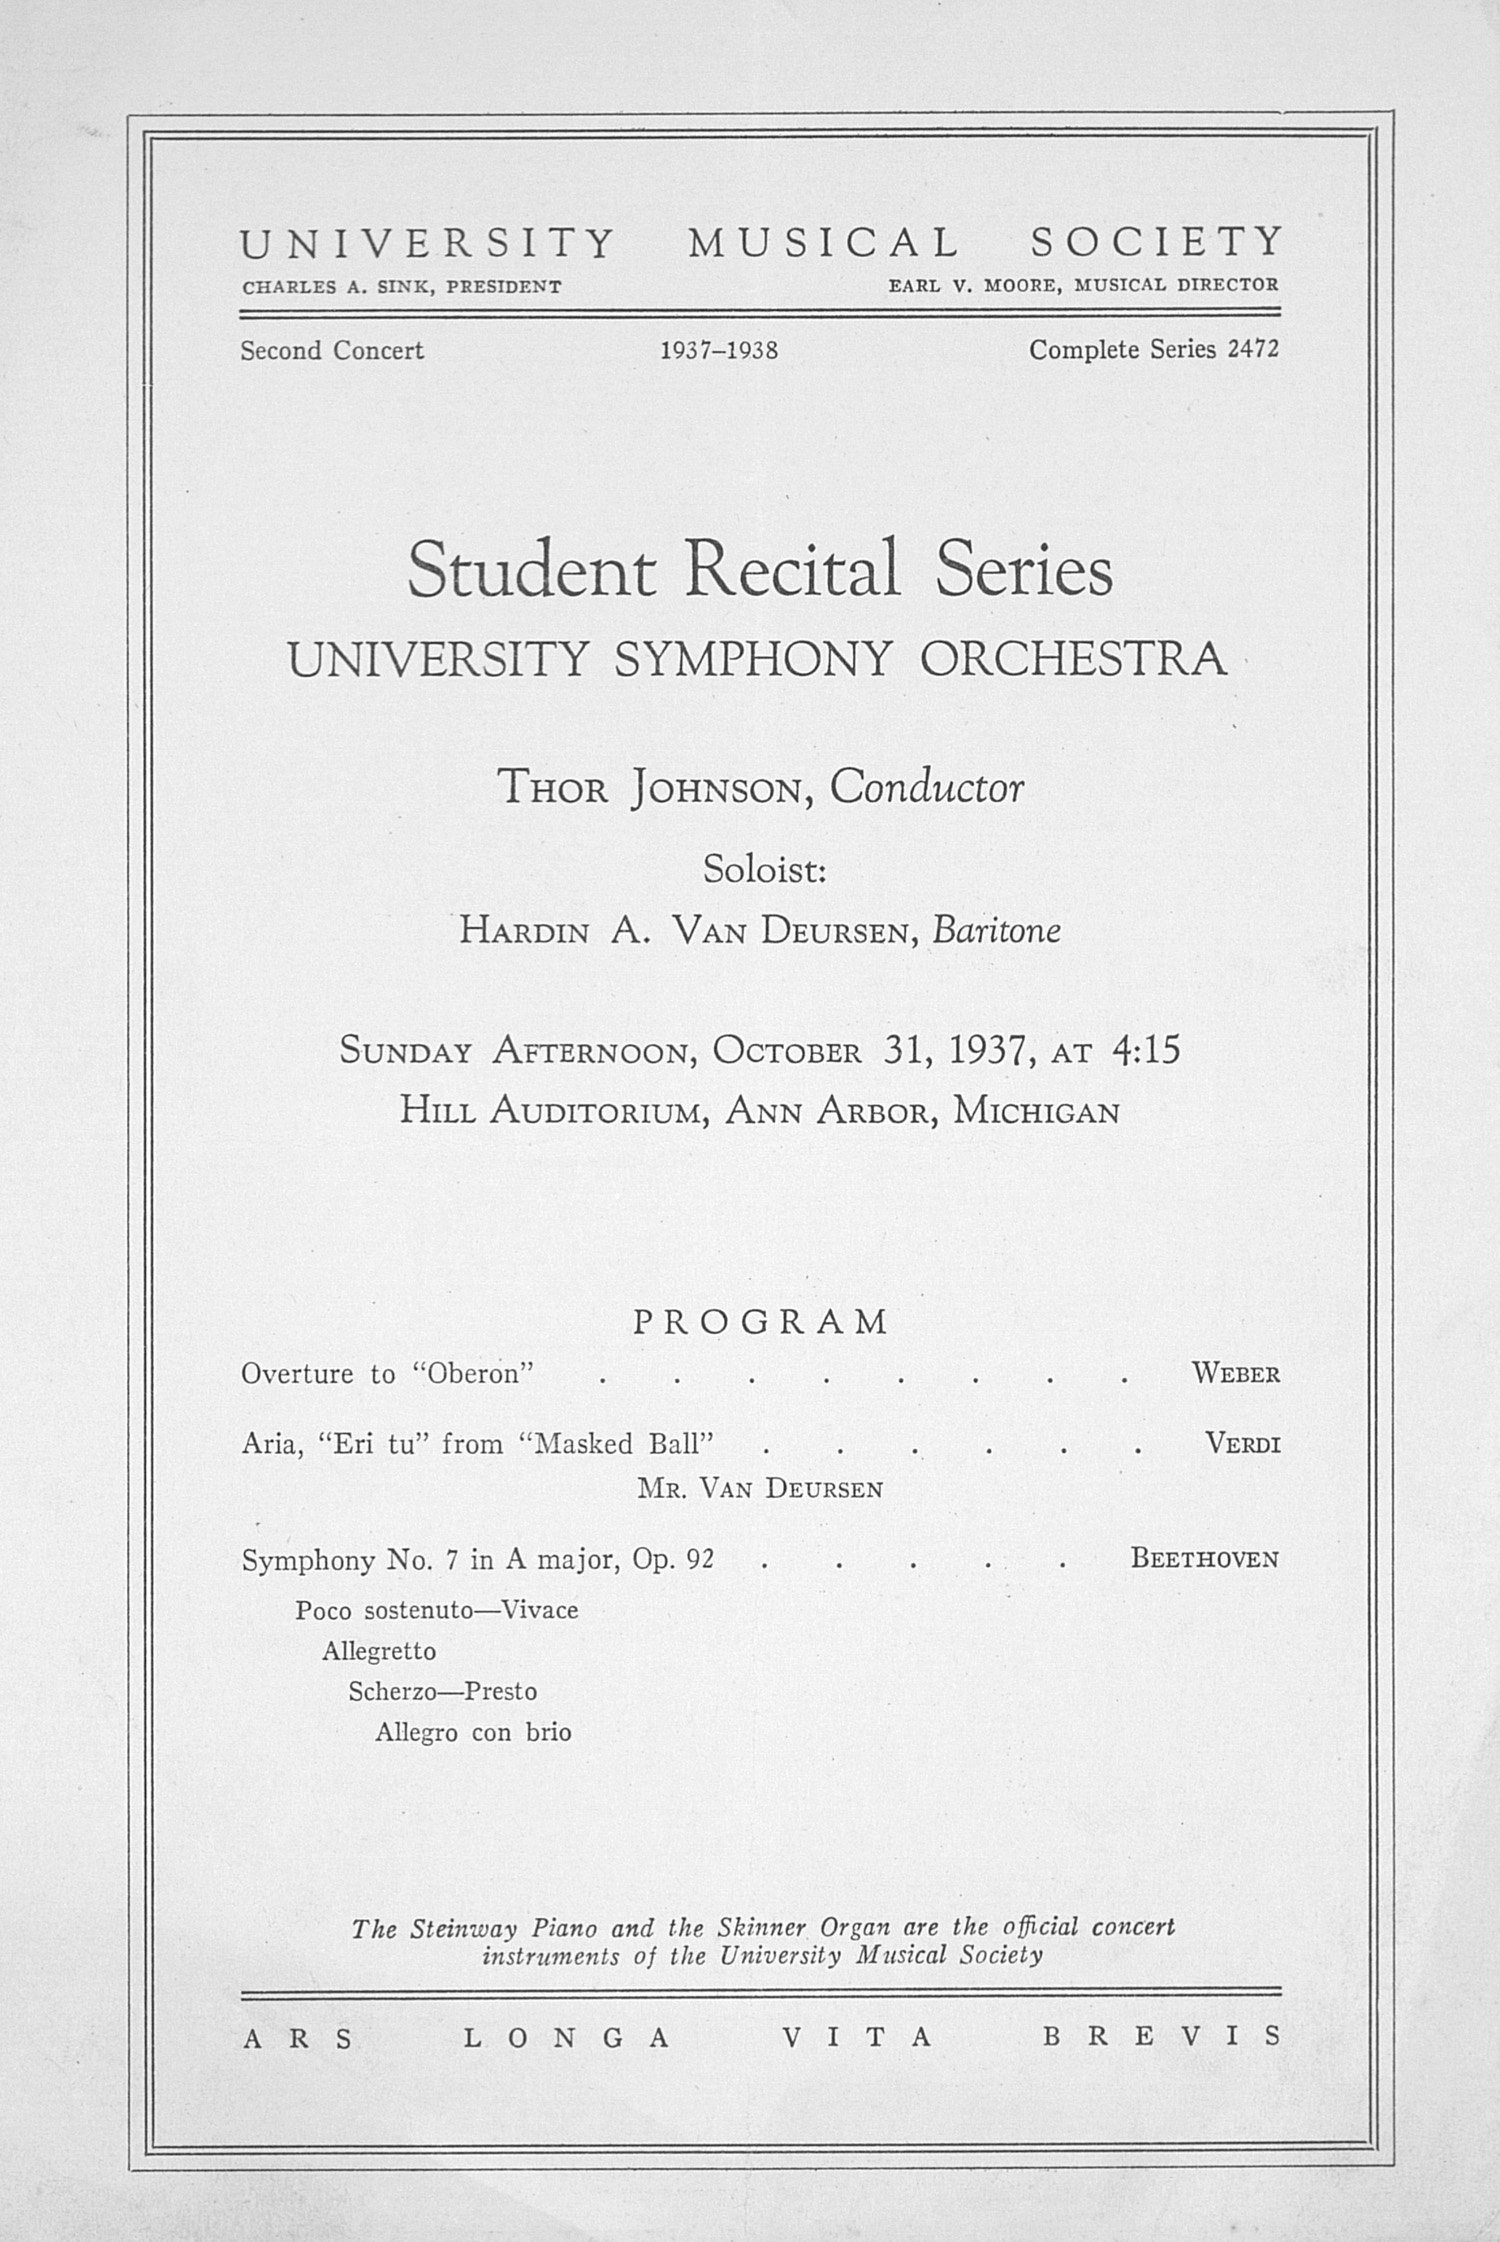 UMS Concert Program, October 31, 1937: Student Recital Series -- University Symphony Orchestra image